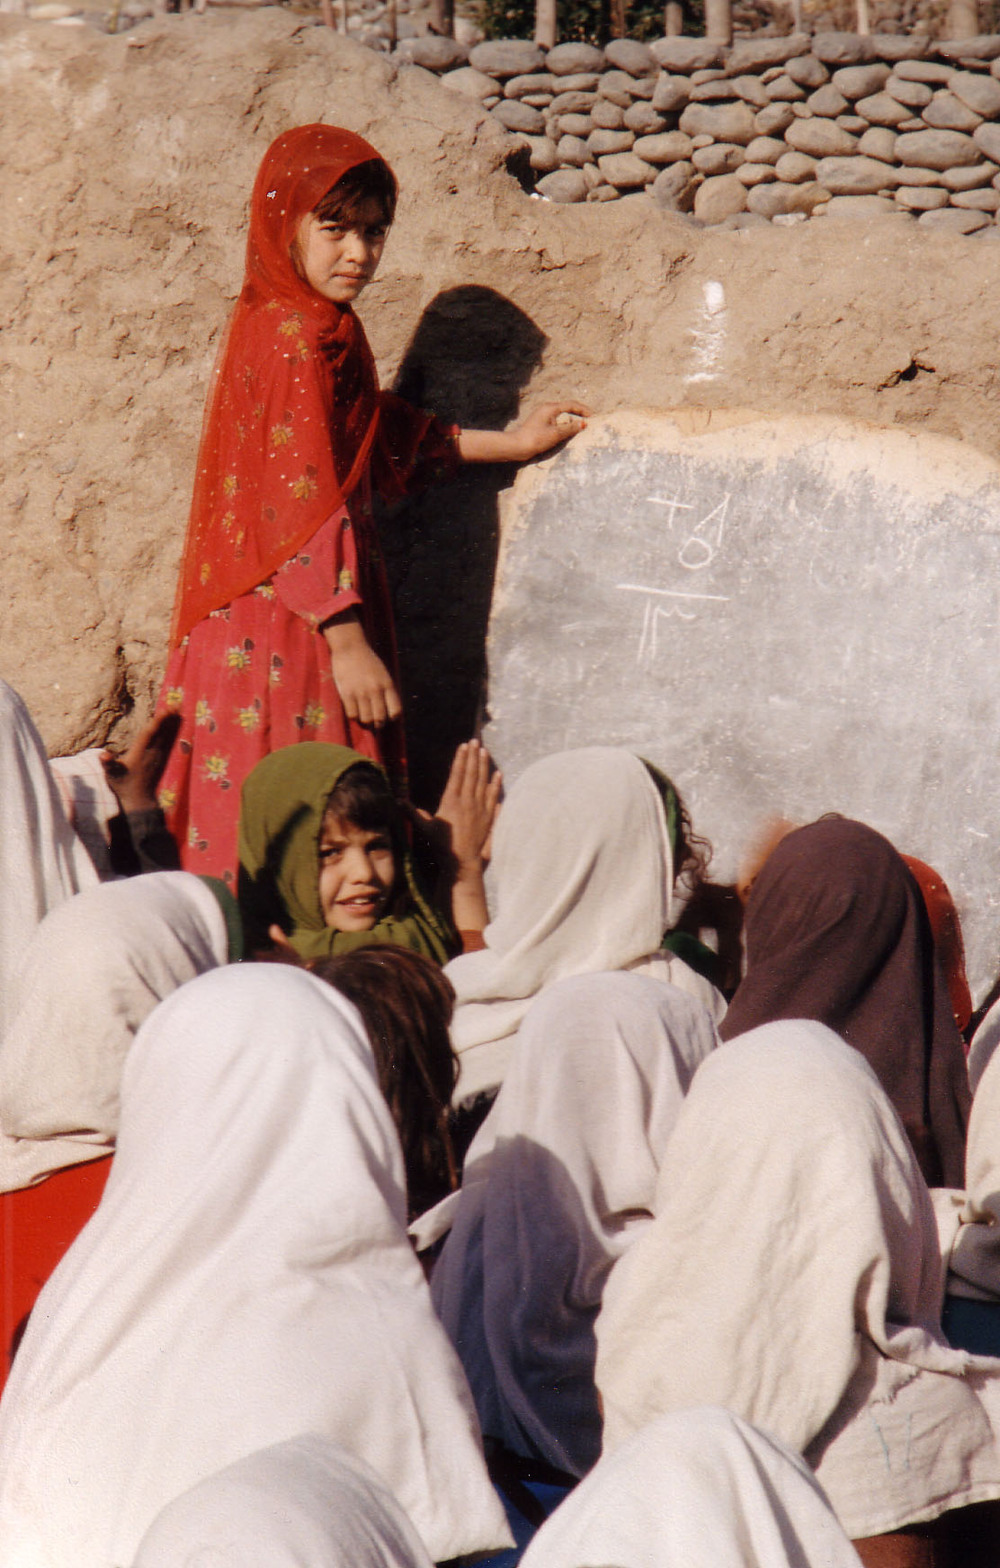 Girls learn arithmetic in Afghanistan